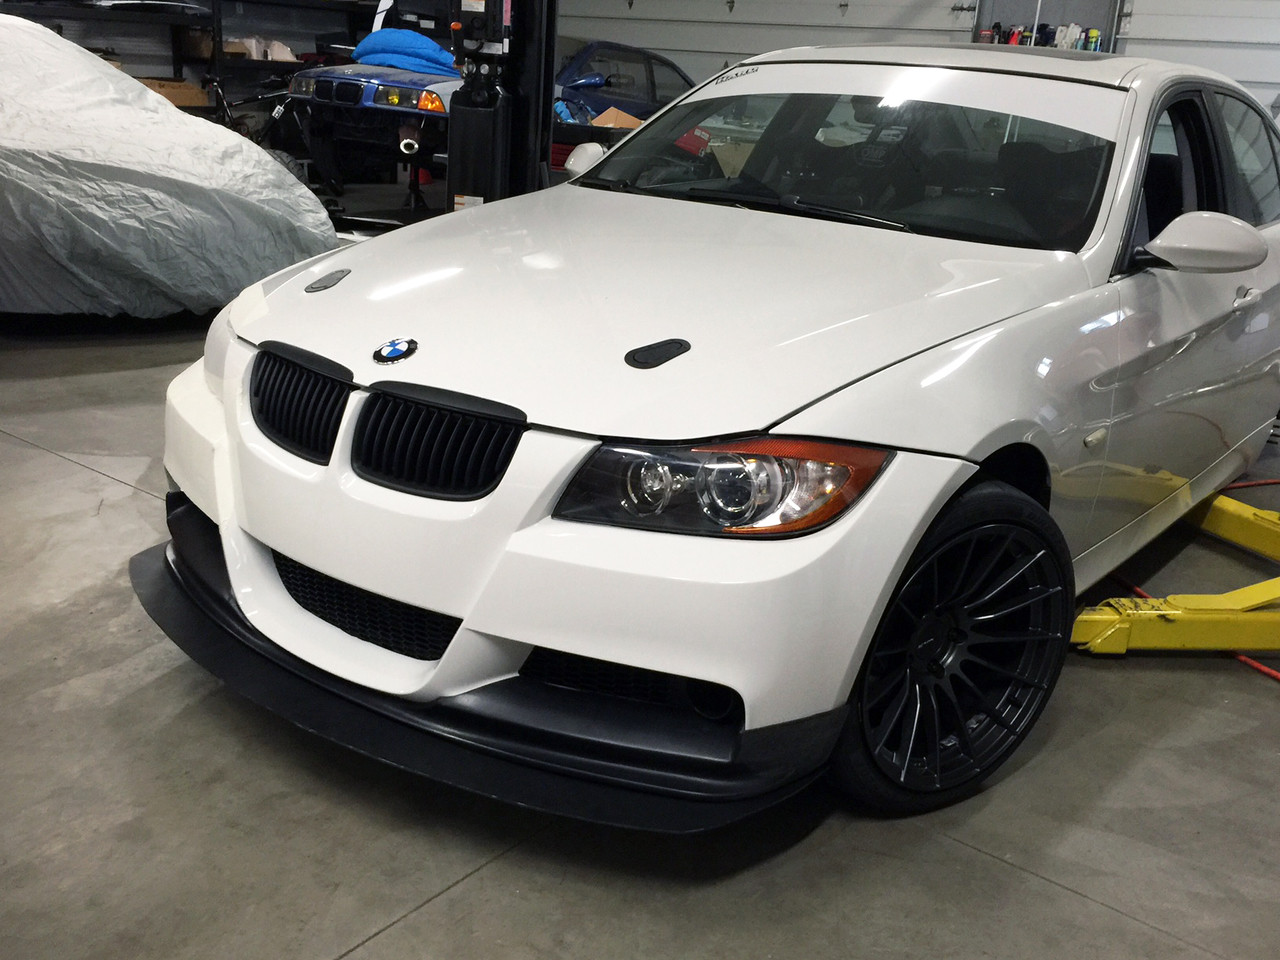 BMW E9x M3 Front Splitter Shown Installed on our HARD Motorsport race car  w/ M-TECH FRONT BUMPER